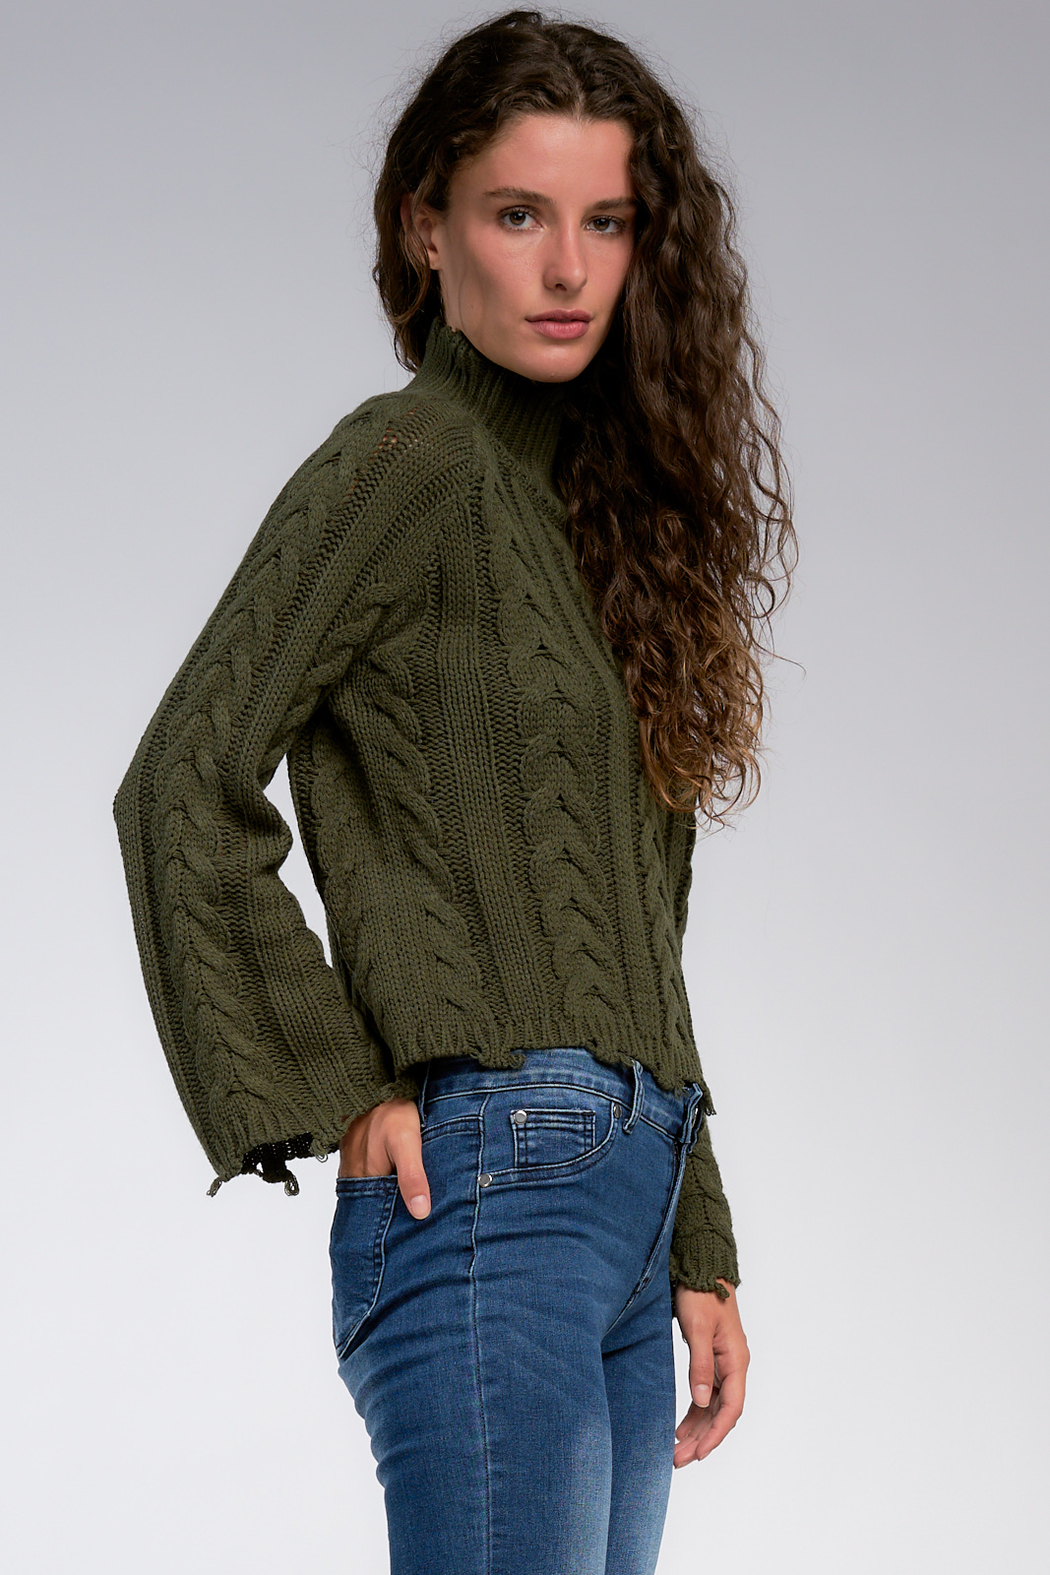 Elan Play It Cool High Neck Distressed Sweater - Front Full Image